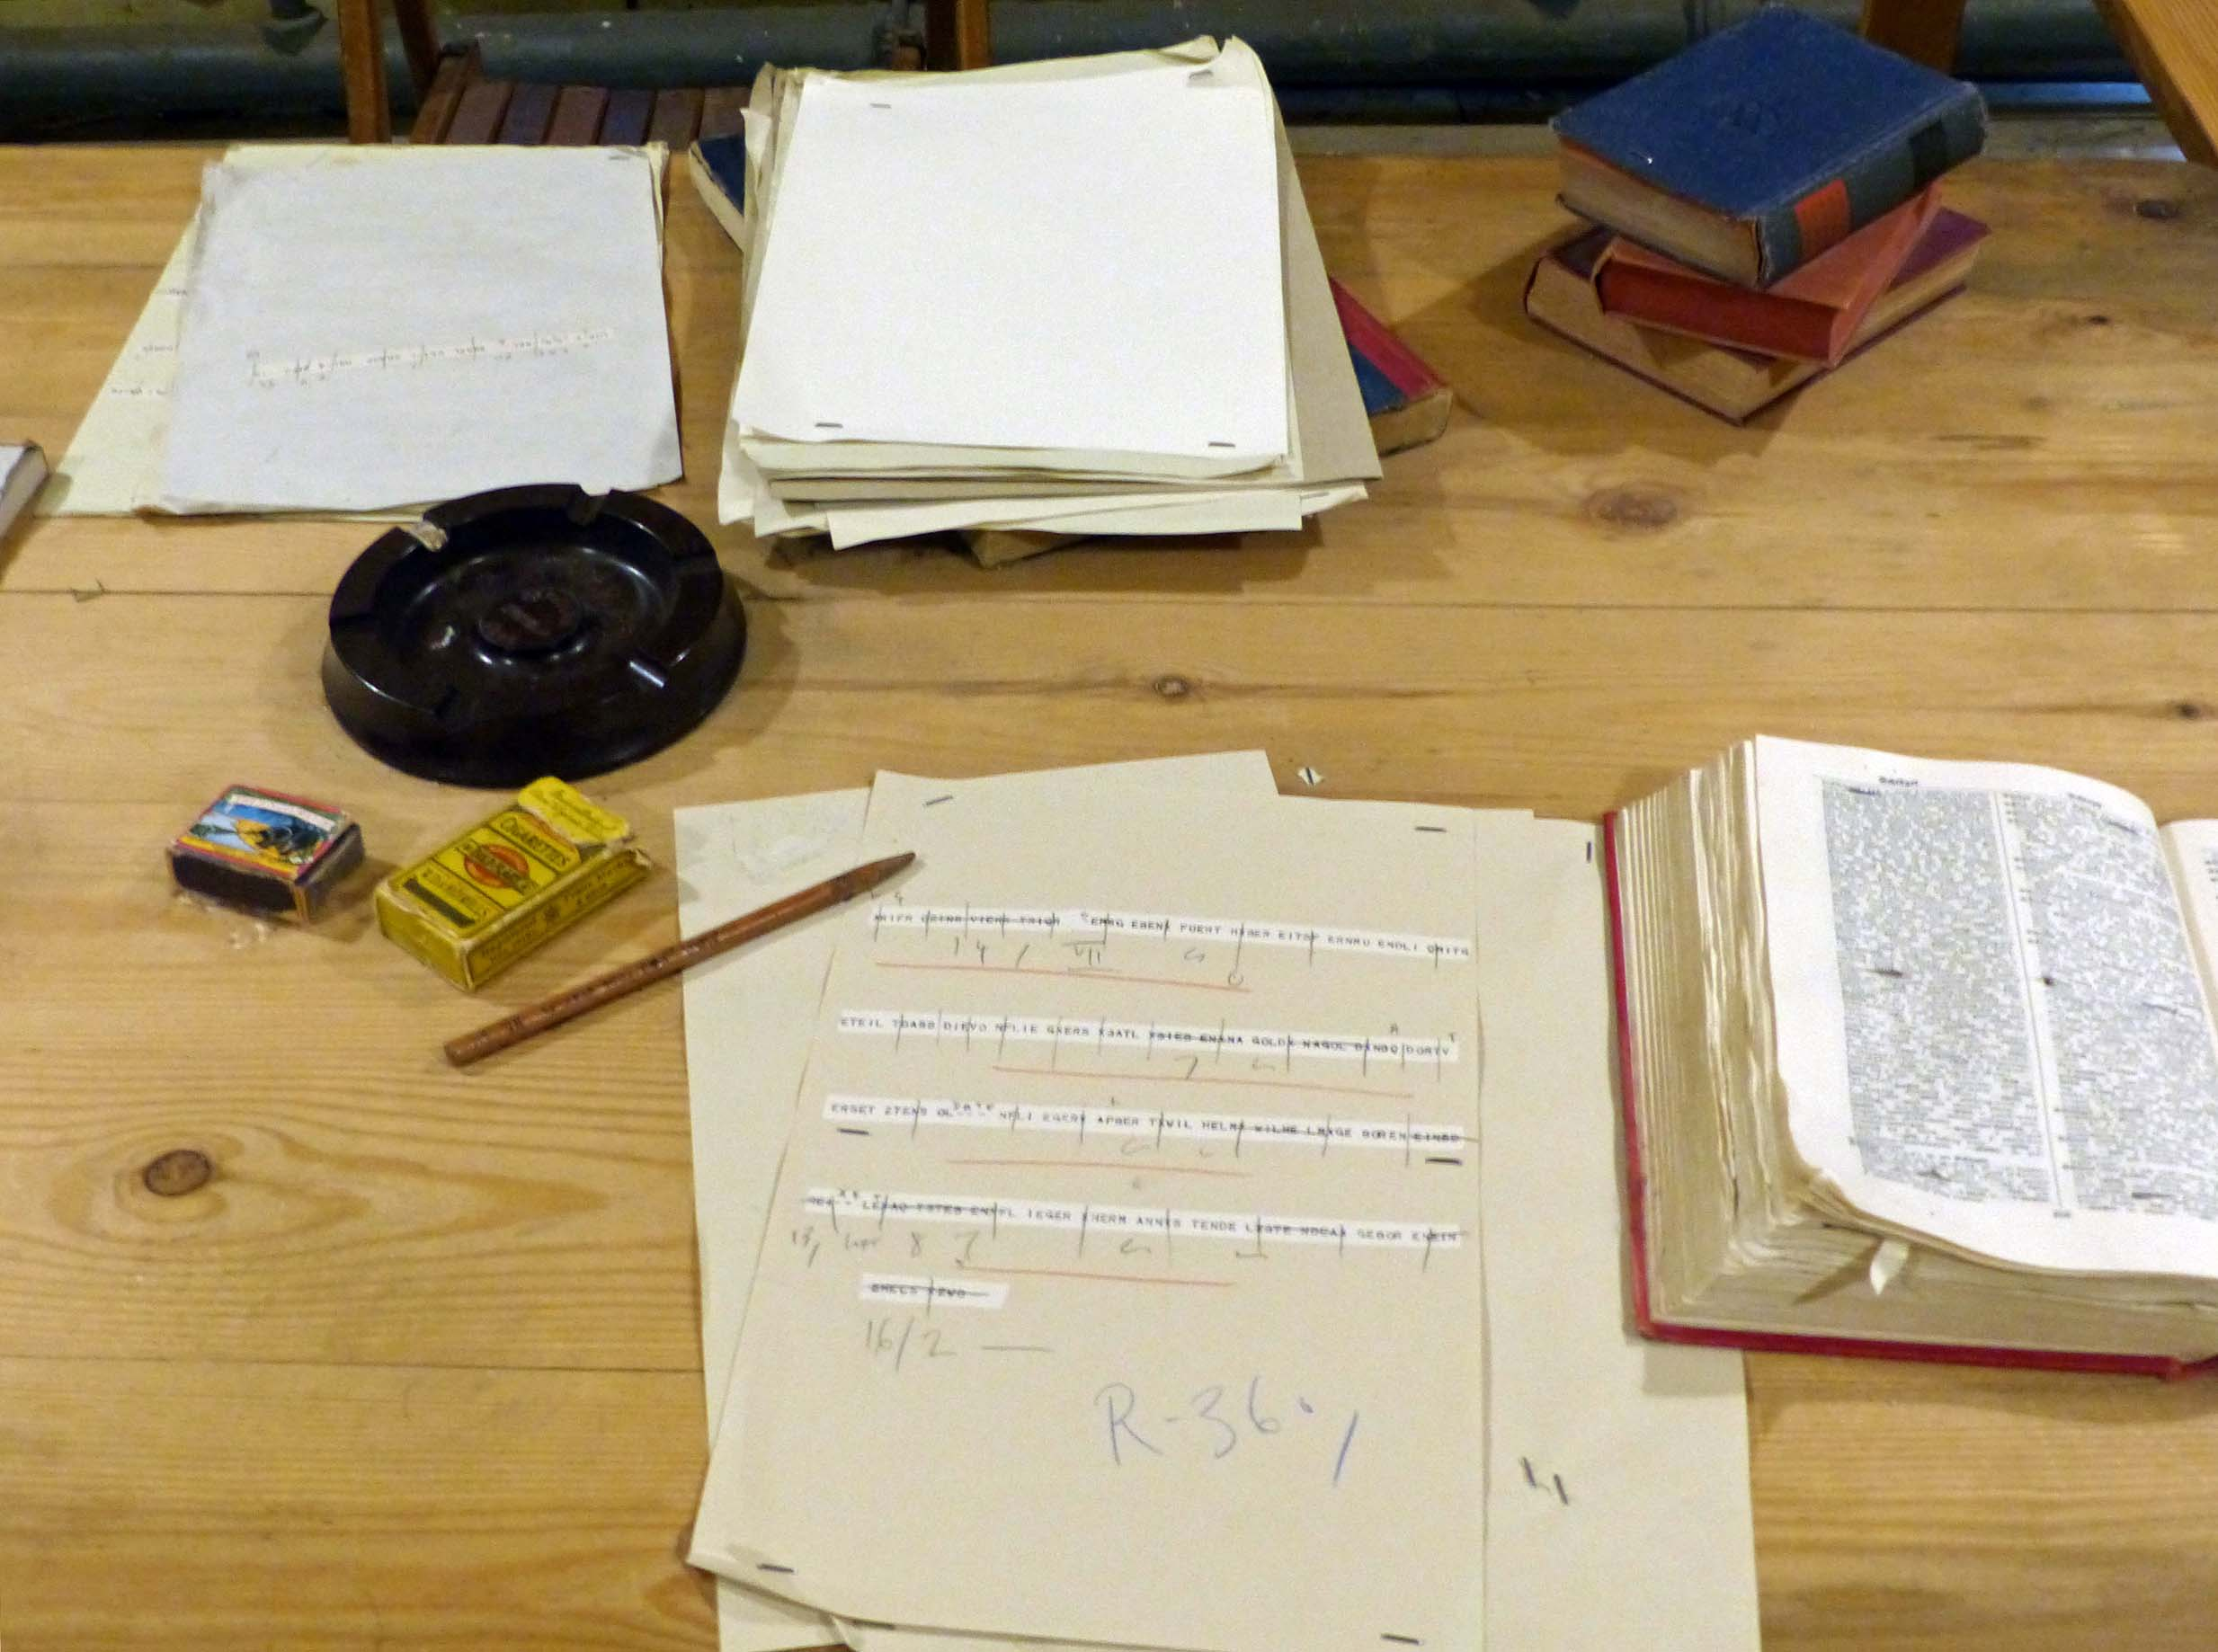 Various papers and books on a desk